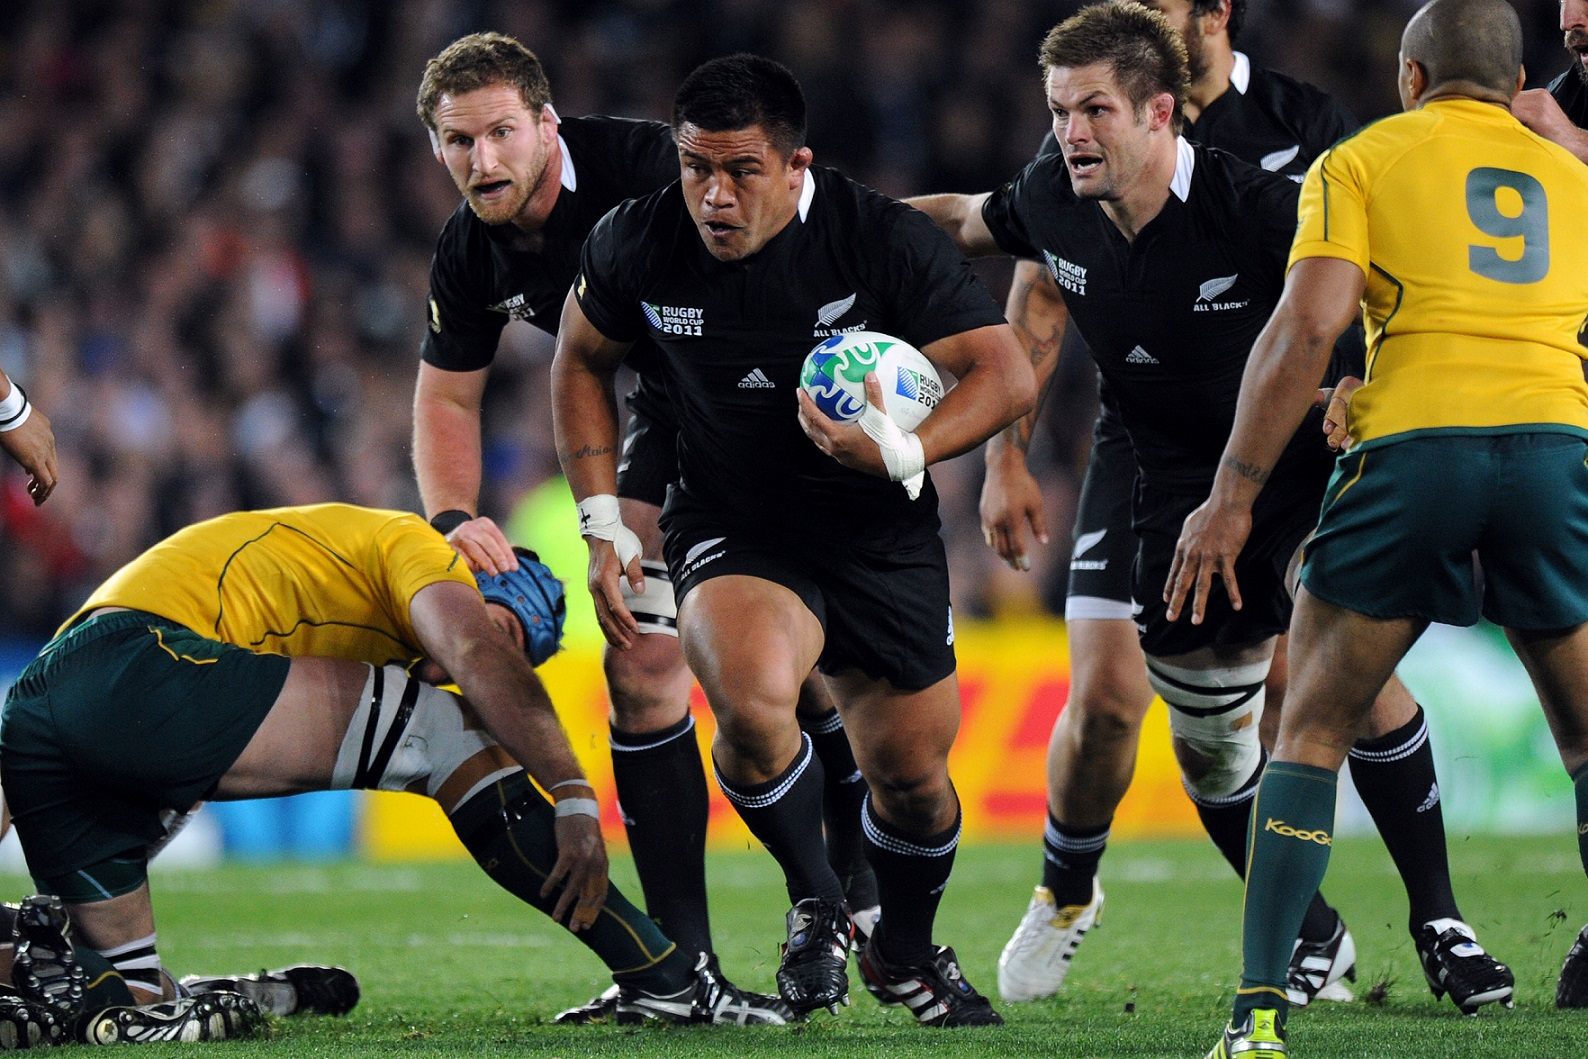 ***IRISH EDITORIAL USE ONLY***  2011 Rugby World Cup Semi-Final, Eden Park, Auckland, New Zealand 16/10/2011 New Zealand vs Australia New Zealand's Keven Mealamu with the ball Mandatory Credit ©INPHO/Photosport/Andrew Cornaga *** Local Caption ***